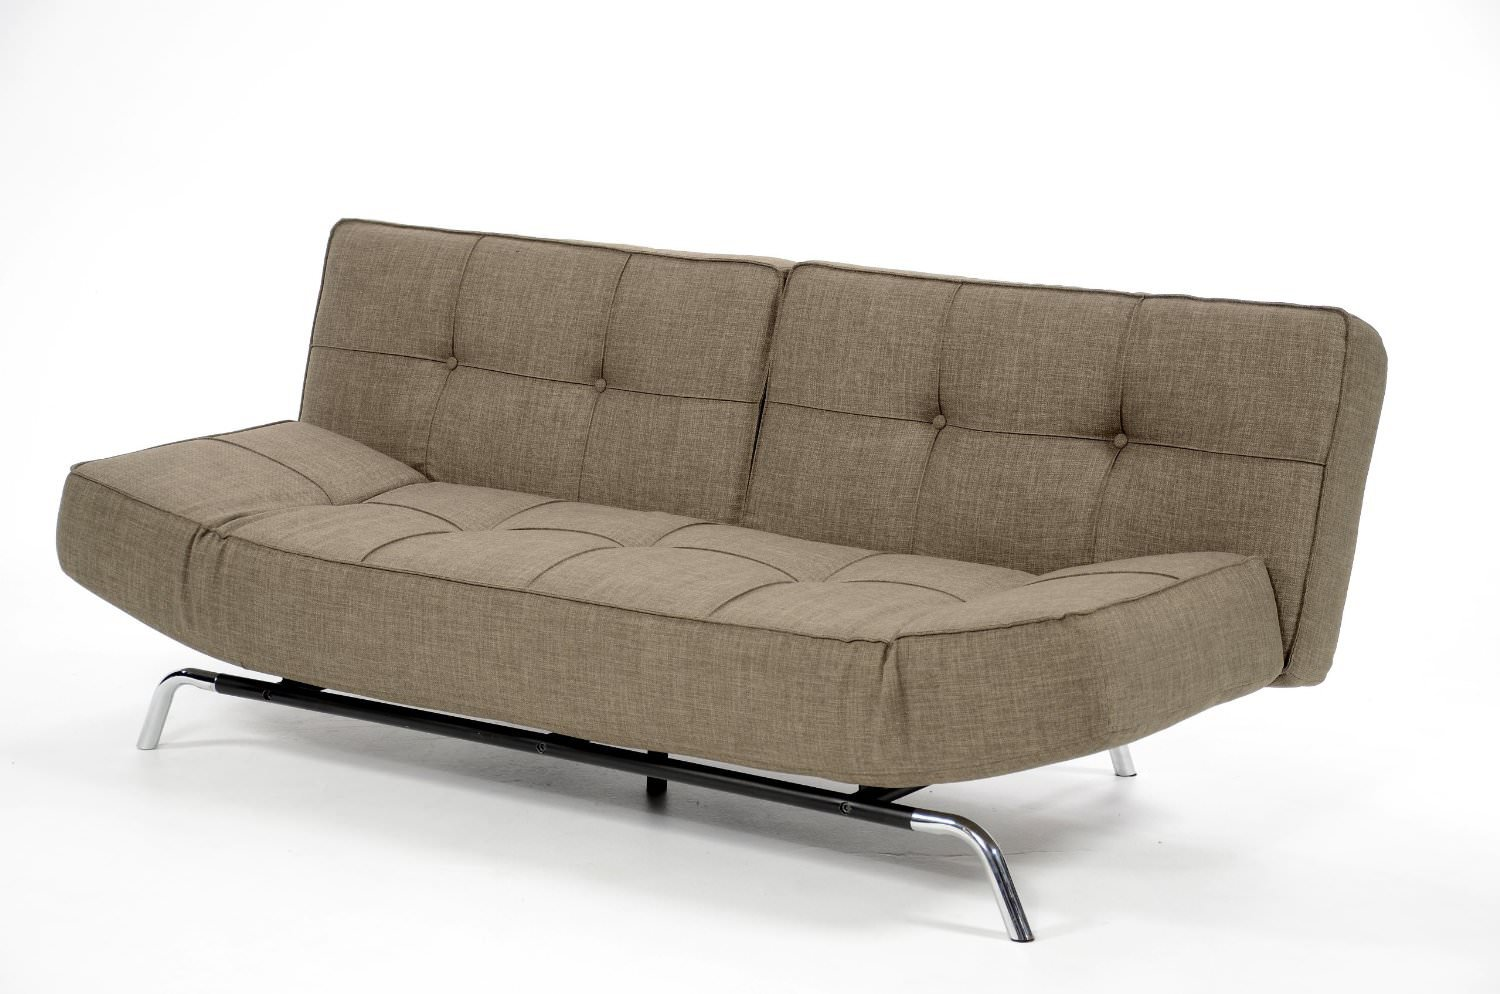 Marcel marquee convertible sofa bed by lifestyle for Divan convertible